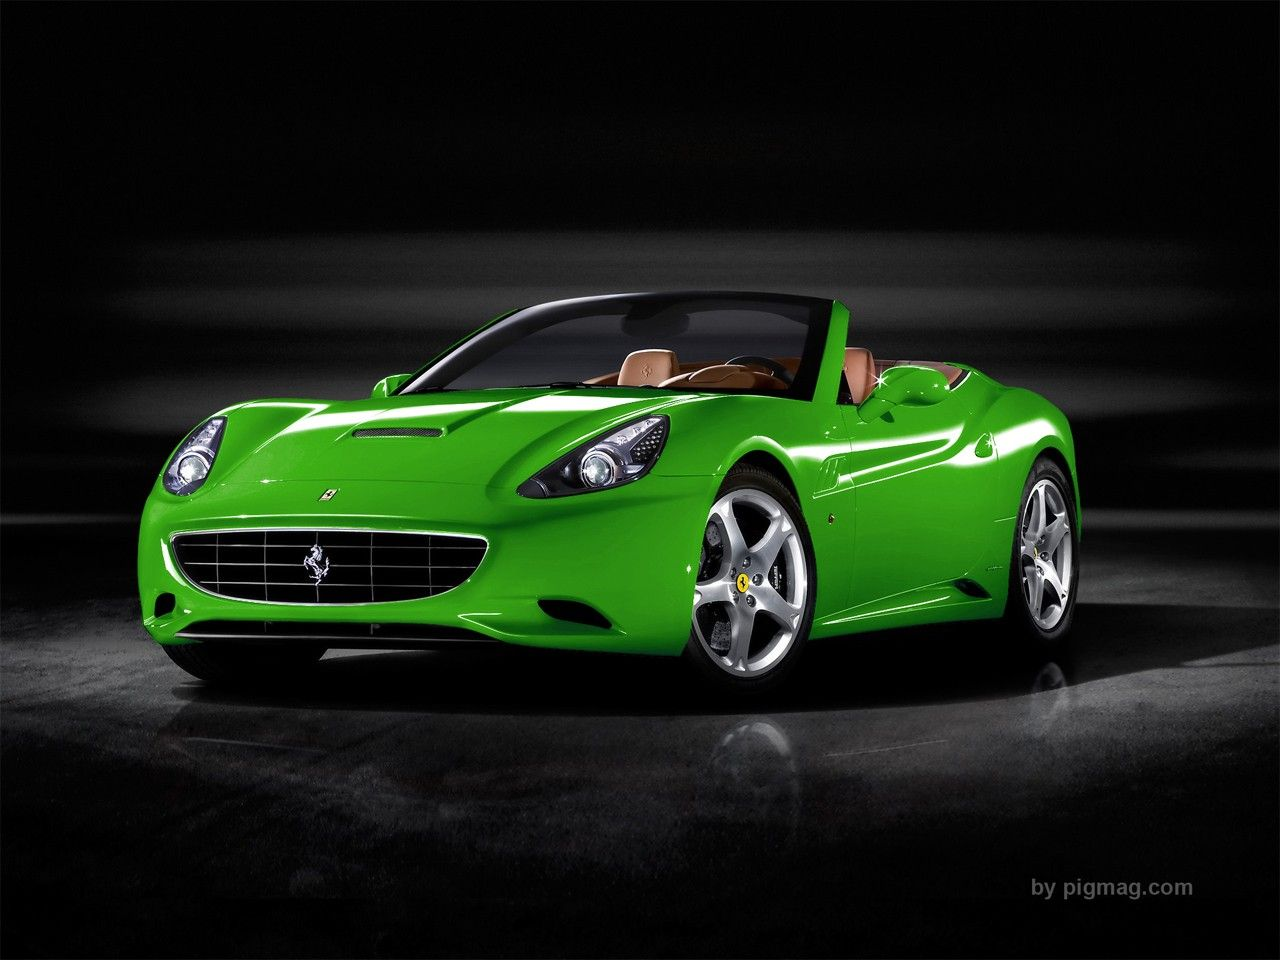 Green Sports Cars 2009 Ferrari California 187 2009 Ferrari